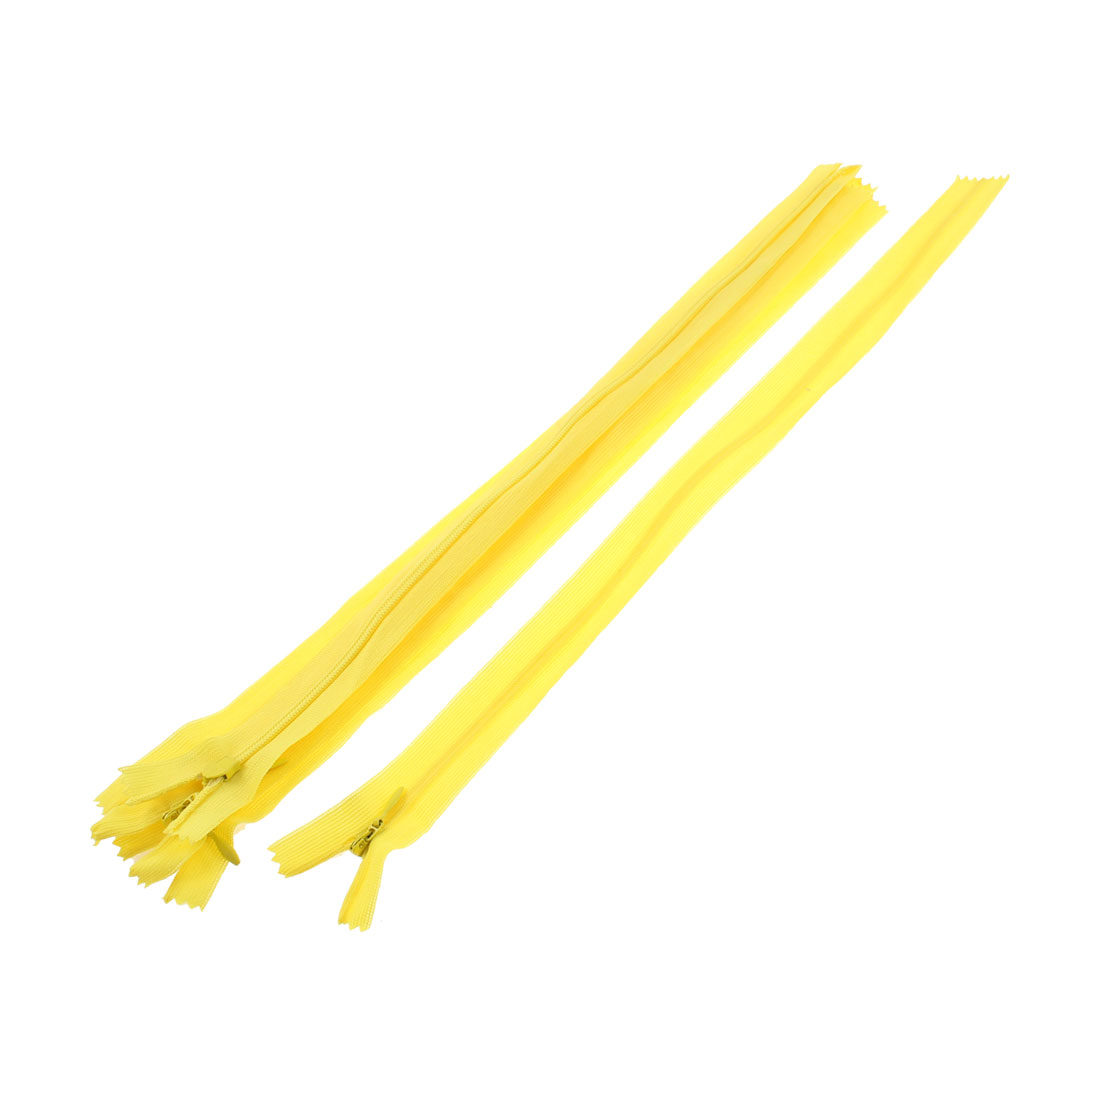 "Yellow Nylon Invisible Concealed Zipper 14"" Long 5 Pcs"